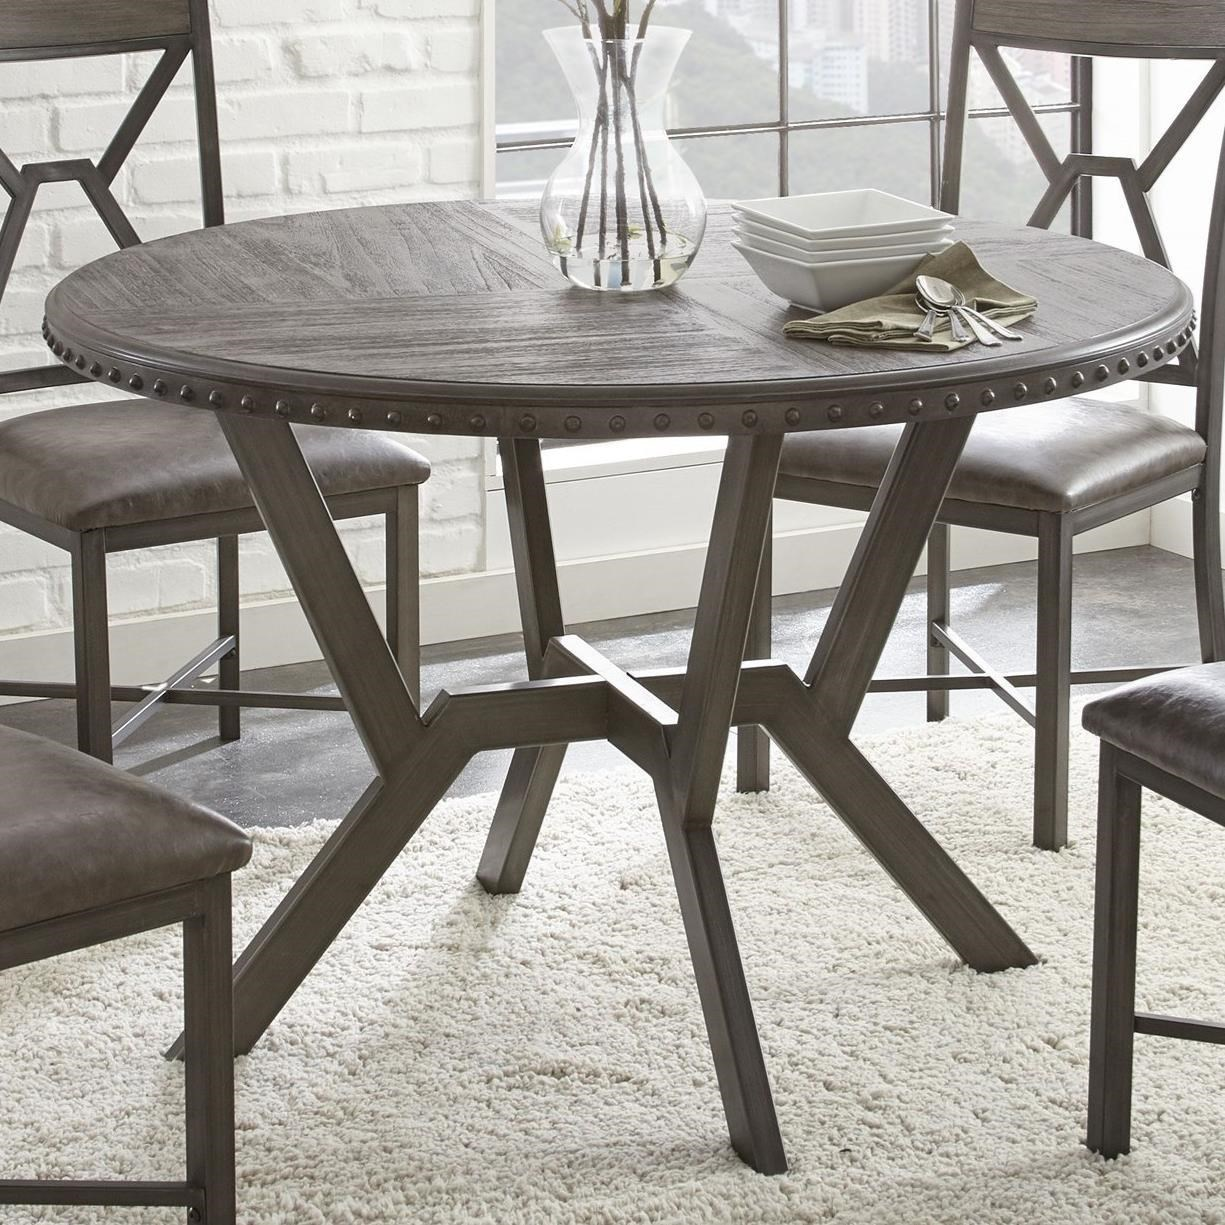 Alamo Round Dining Table by Steve Silver at Walker's Furniture